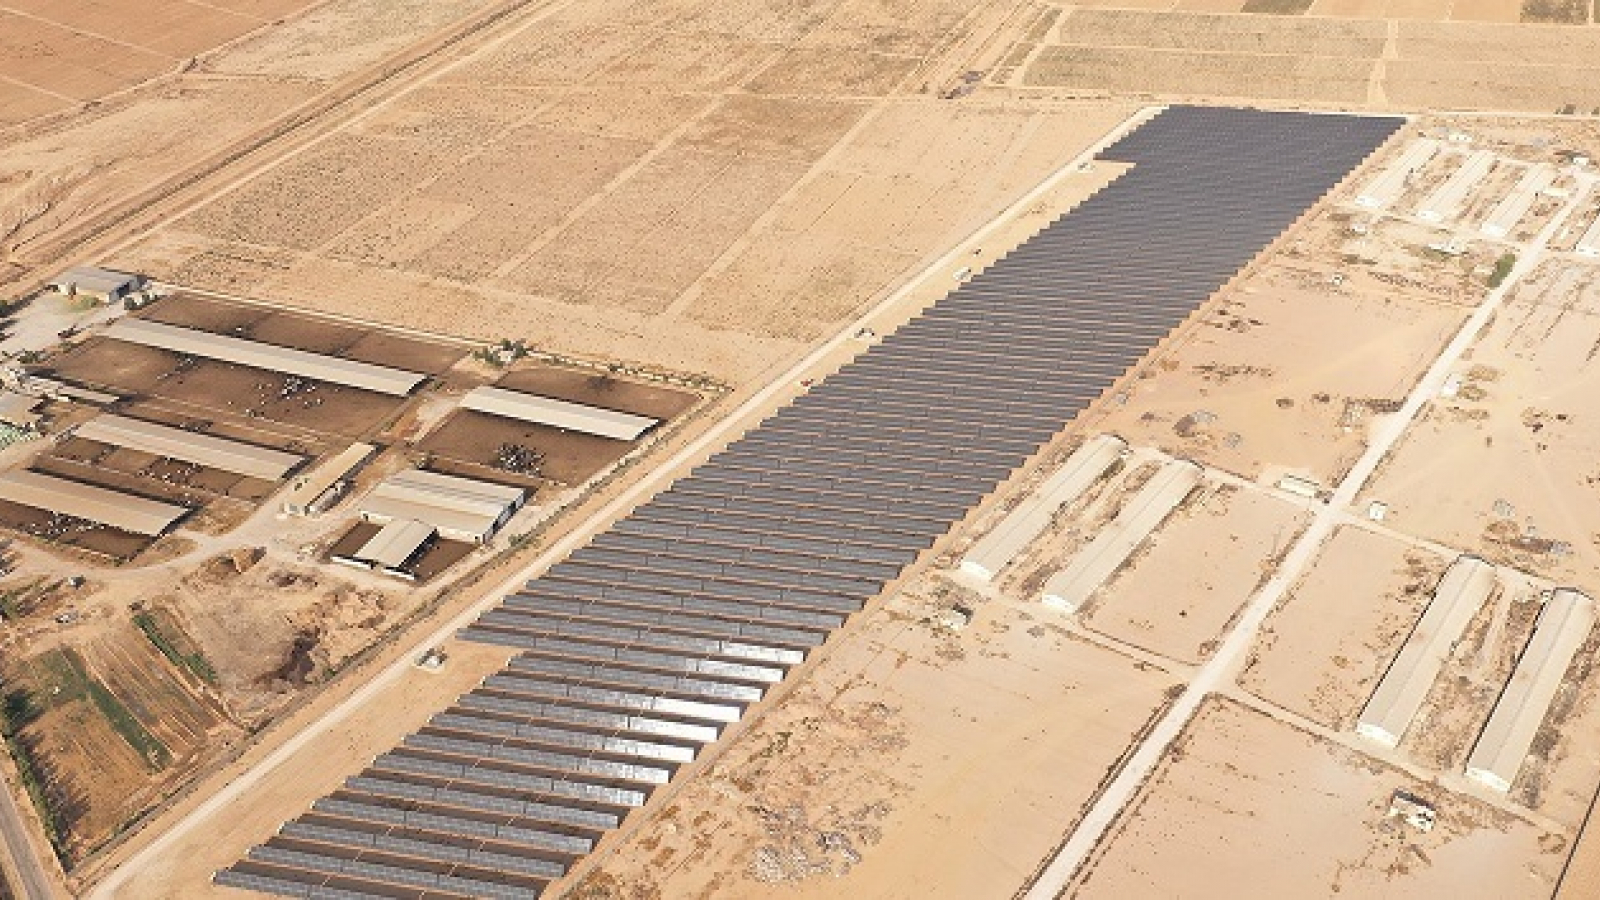 European Bank for Reconstruction and Development promotes private-to-private solar energy in Jordan